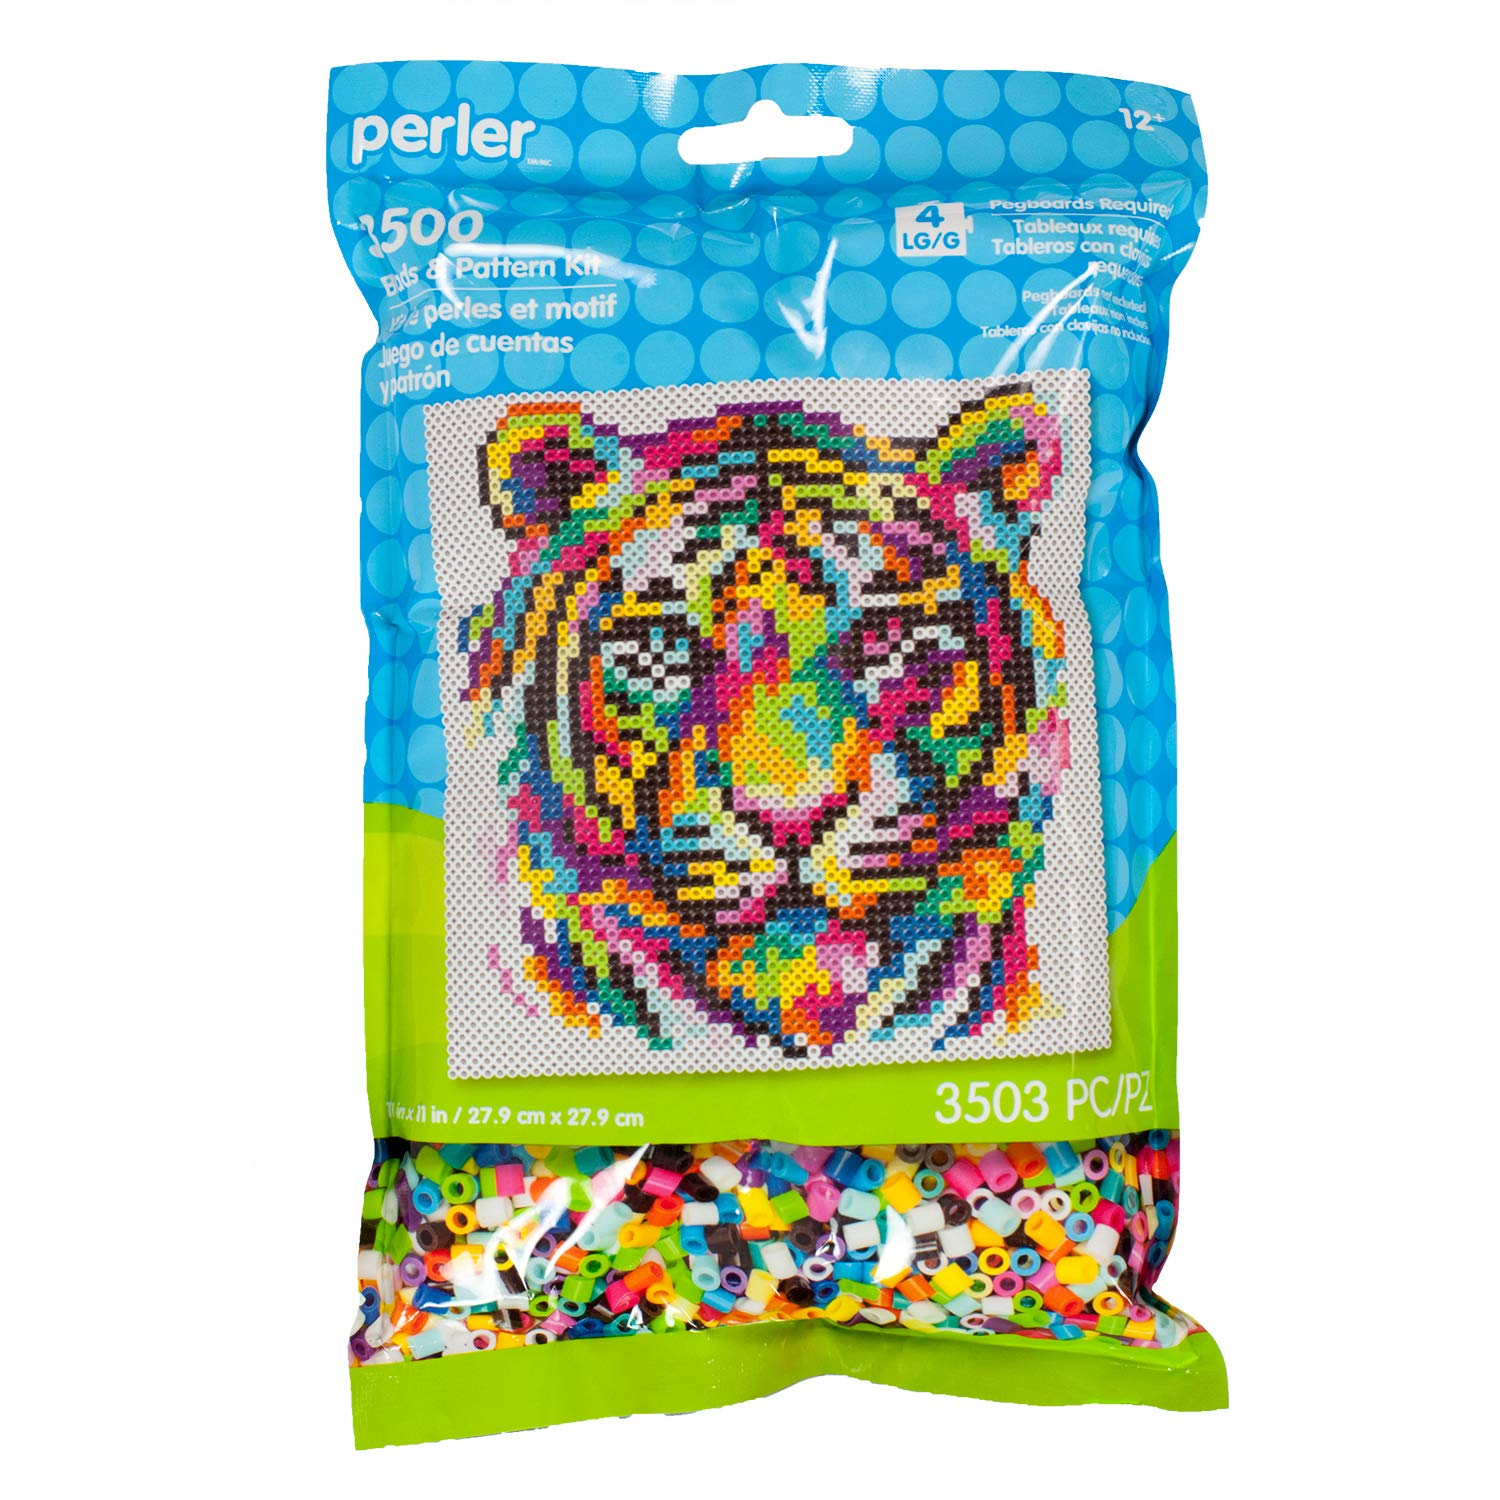 Perler Fuse Beads 3000 Unidades - Rainbow Tiger (xsr)